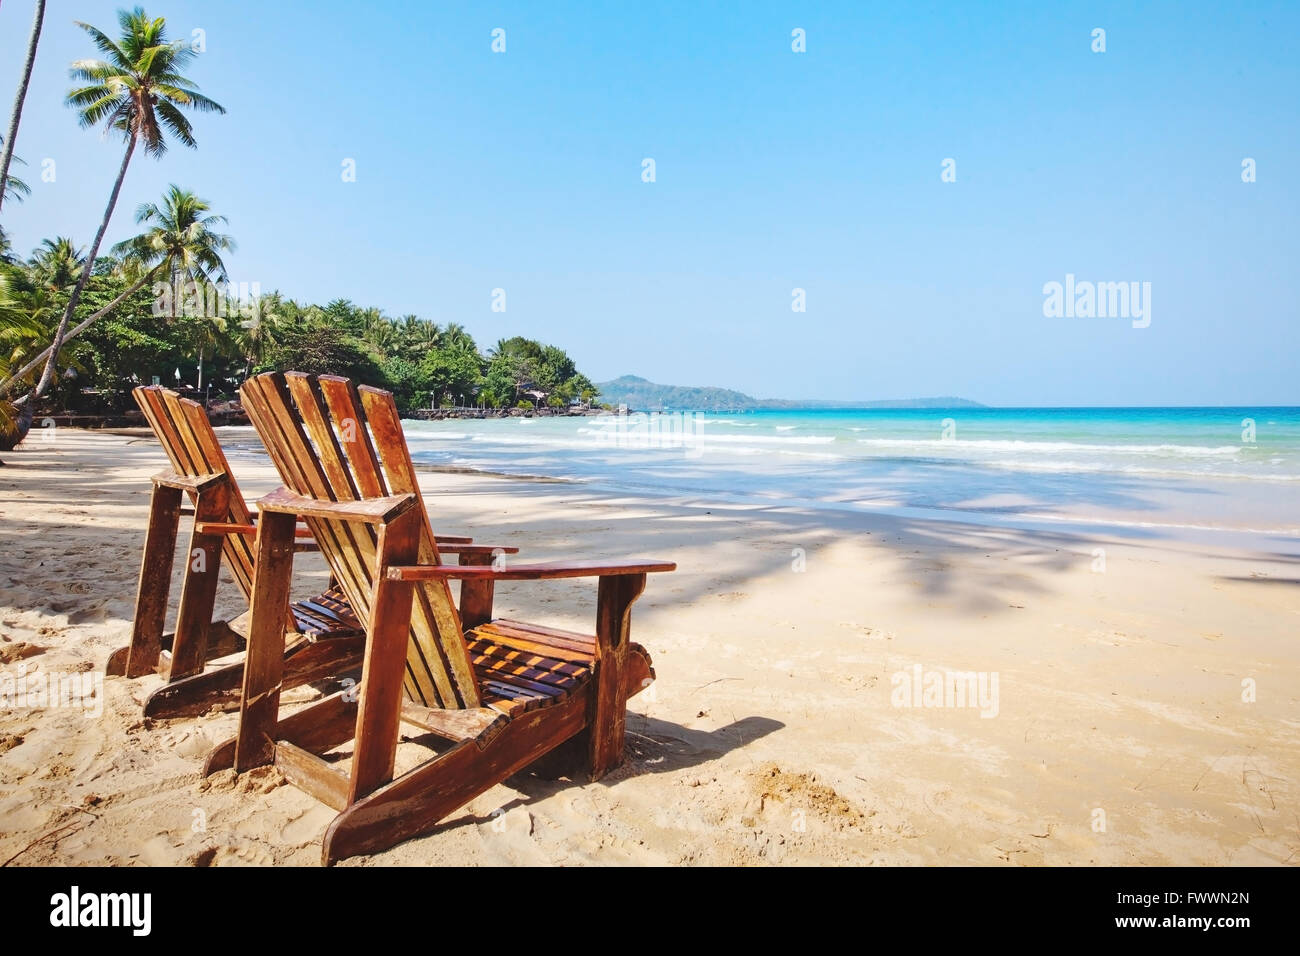 summer tropical holidays, beach hotel in sunny day, vacations on paradise island, background with place for text - Stock Image